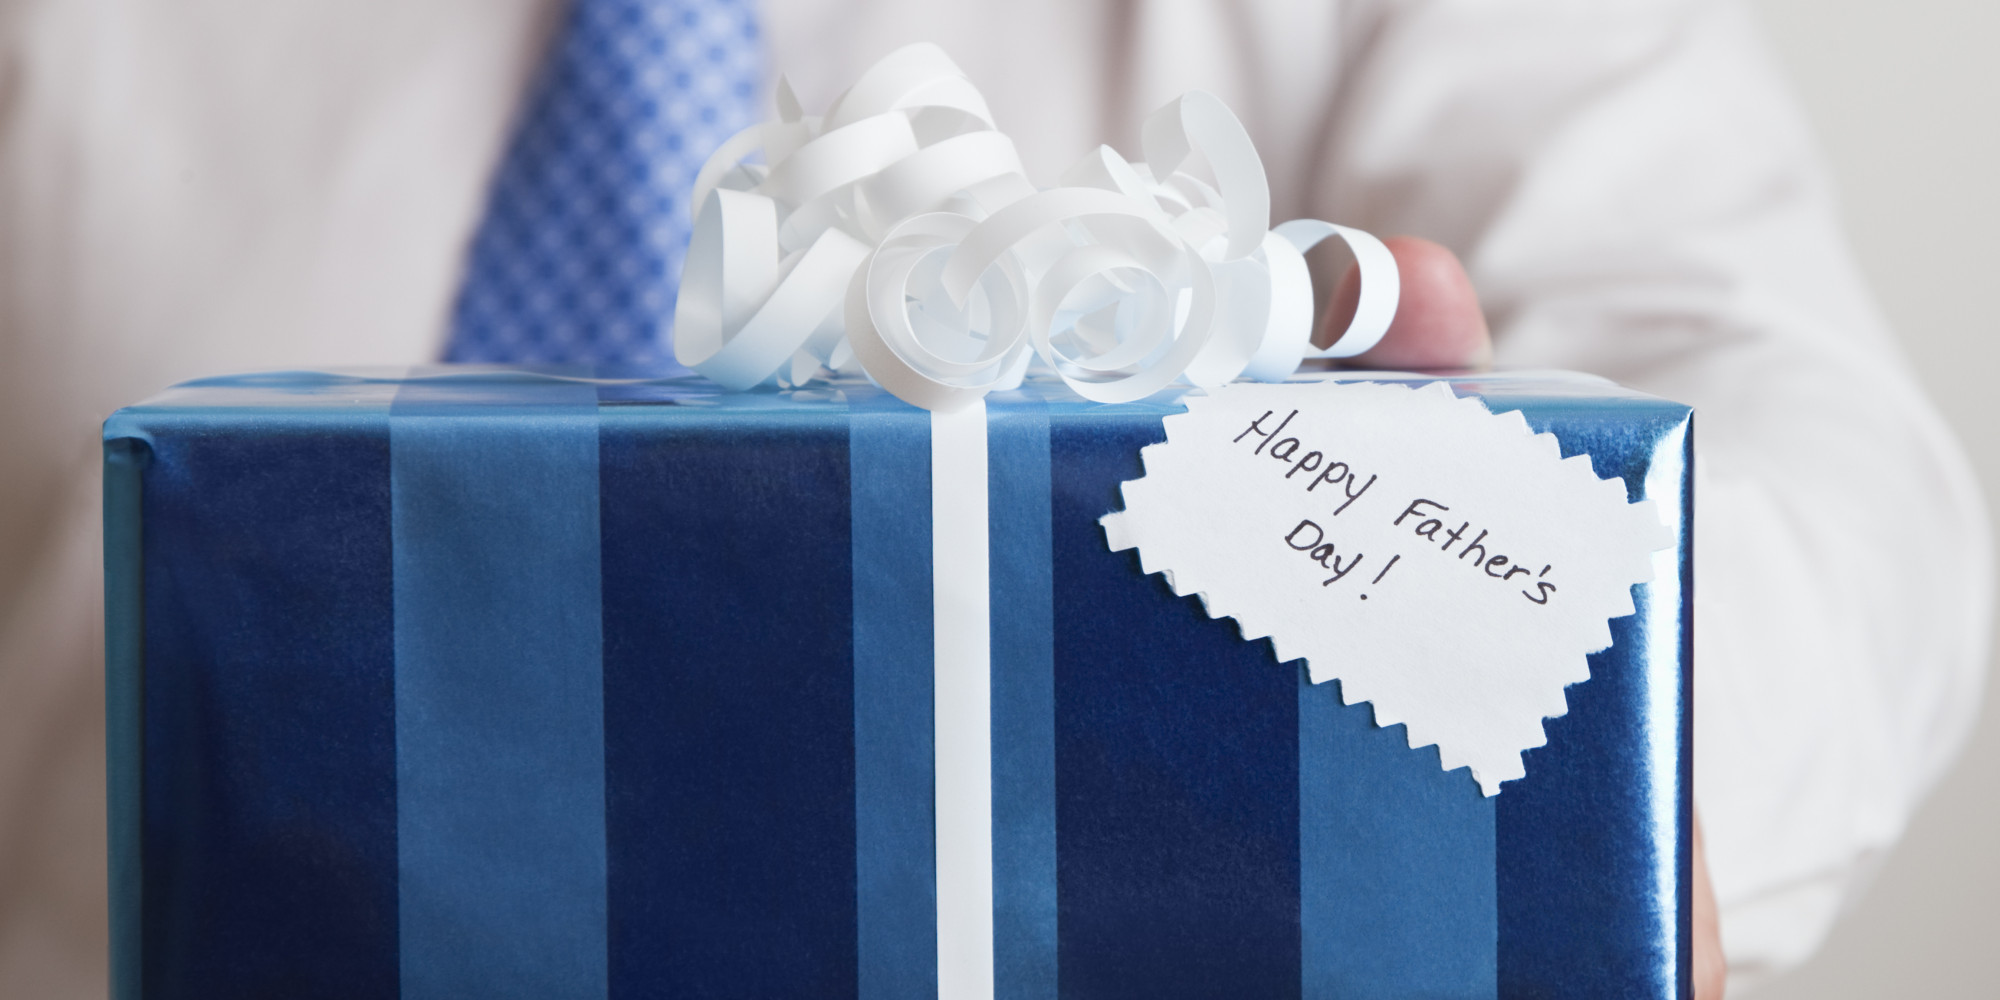 Image result for image, photo, picture, wrong father's day gifts